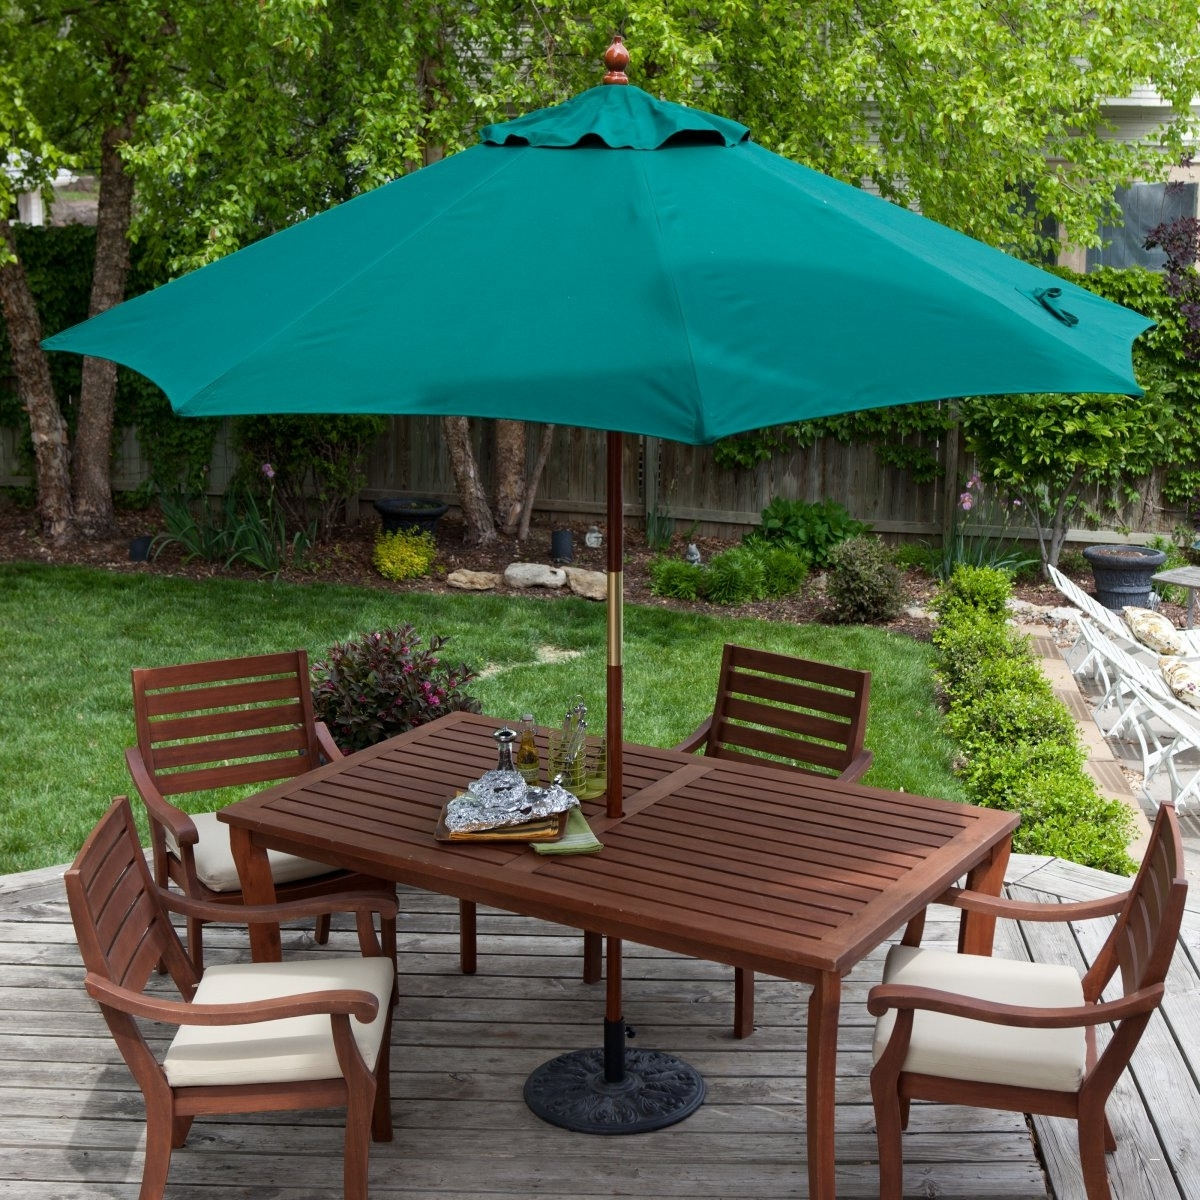 Current Small Patio Table With Umbrella Hole – Luxury Metal Patio Table With In Small Patio Tables With Umbrellas Hole (View 4 of 20)